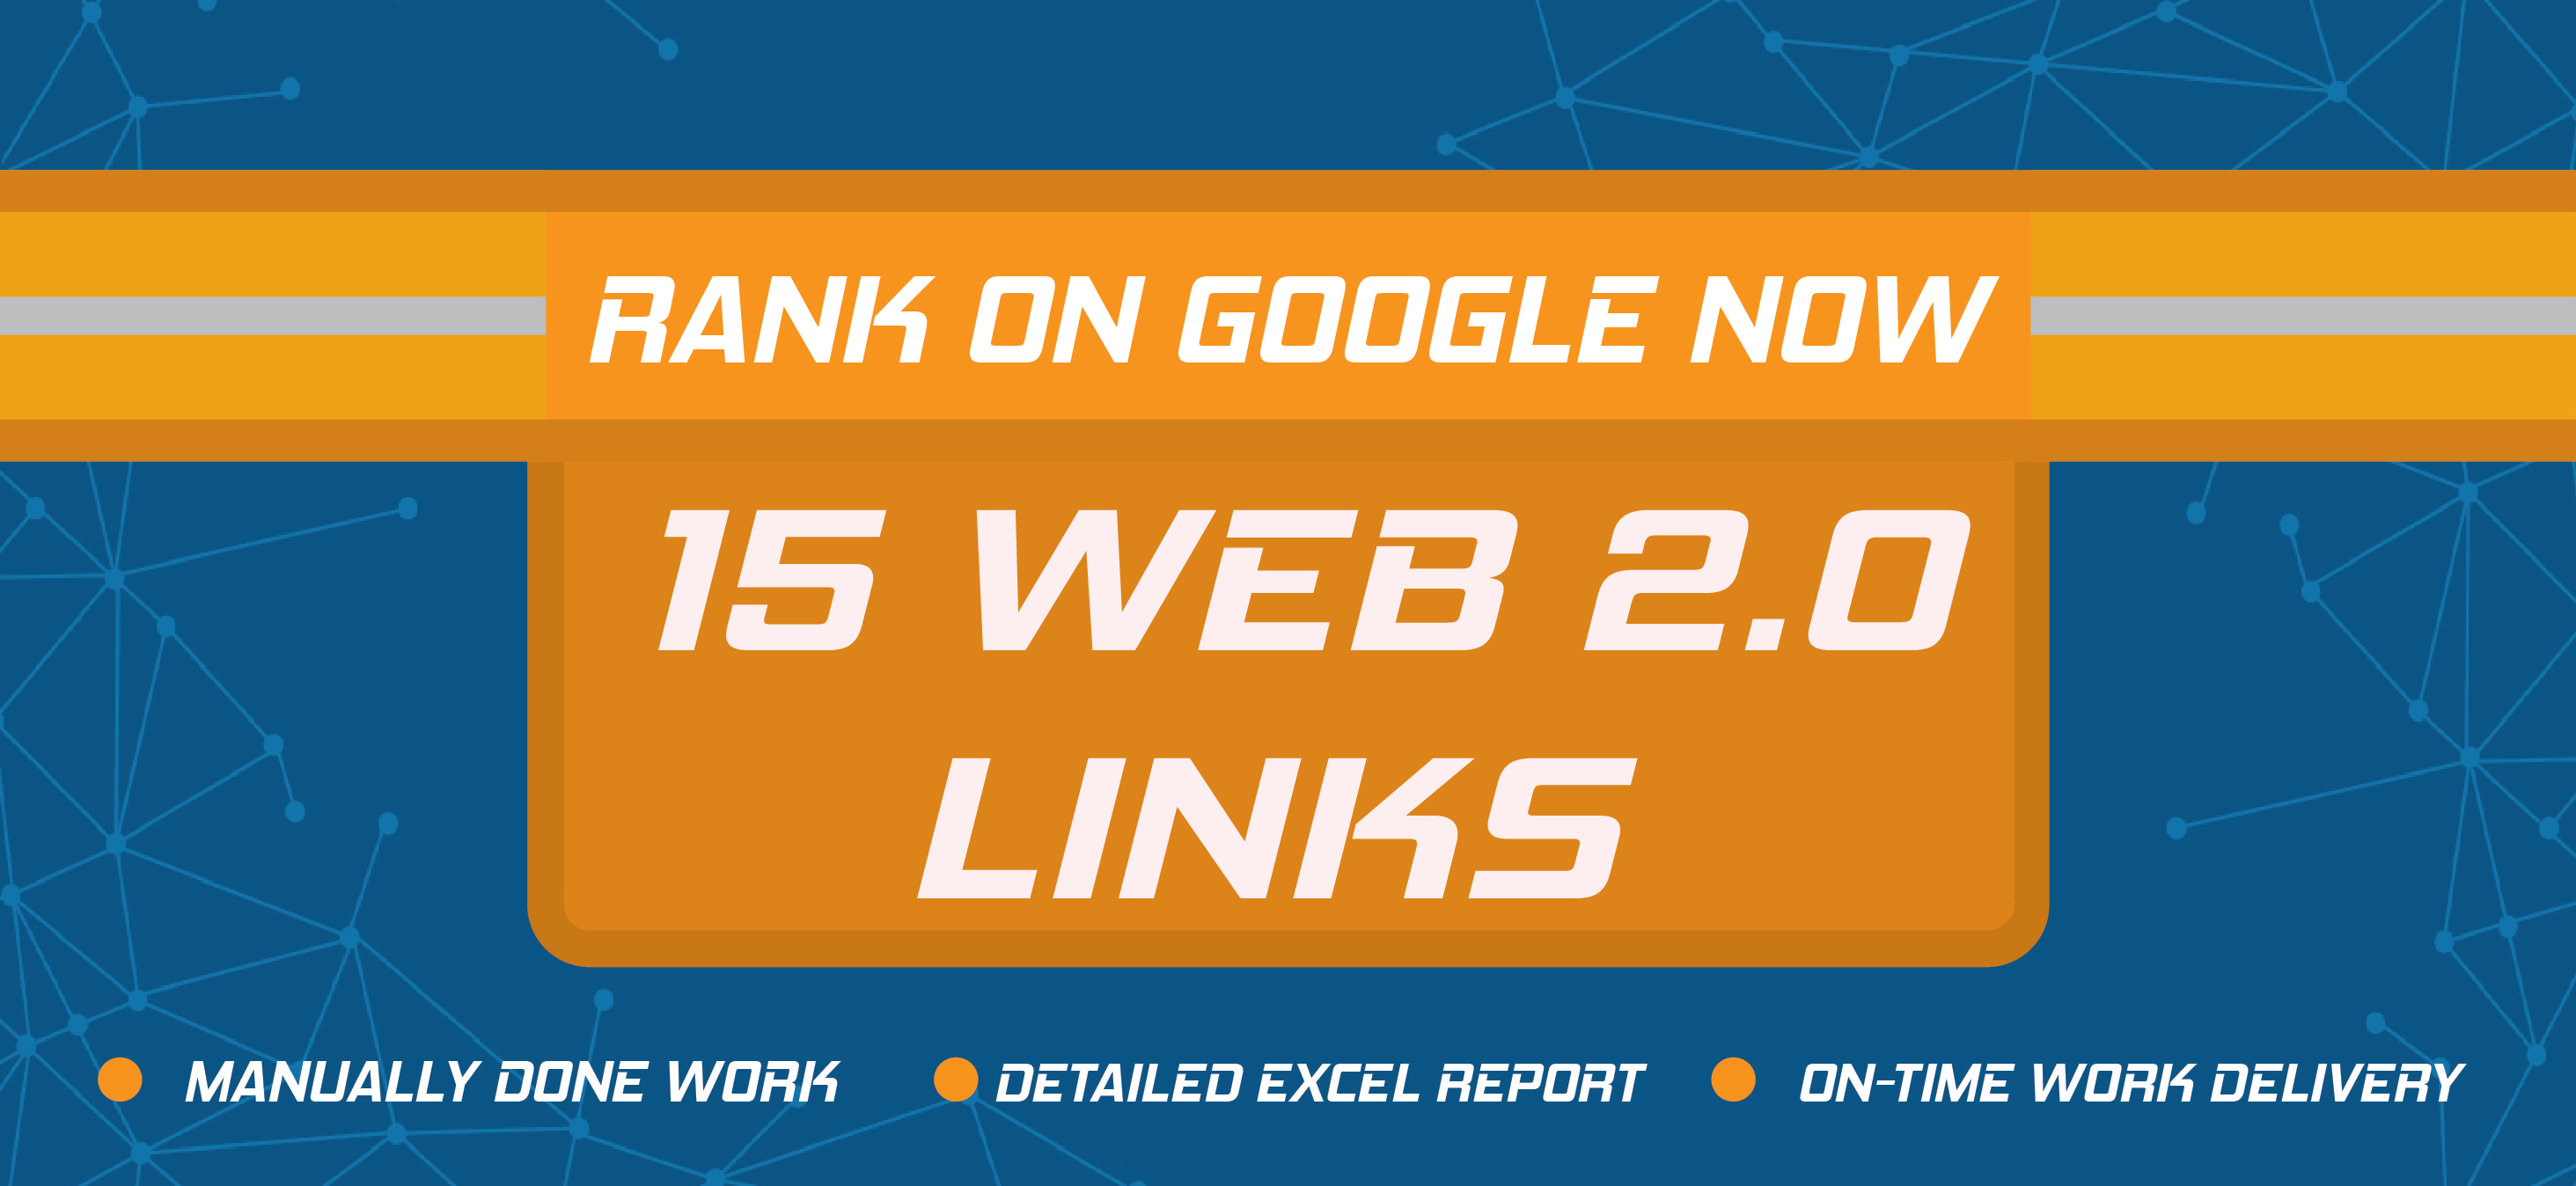 Create 15 Web 2.0 Links For Your Website